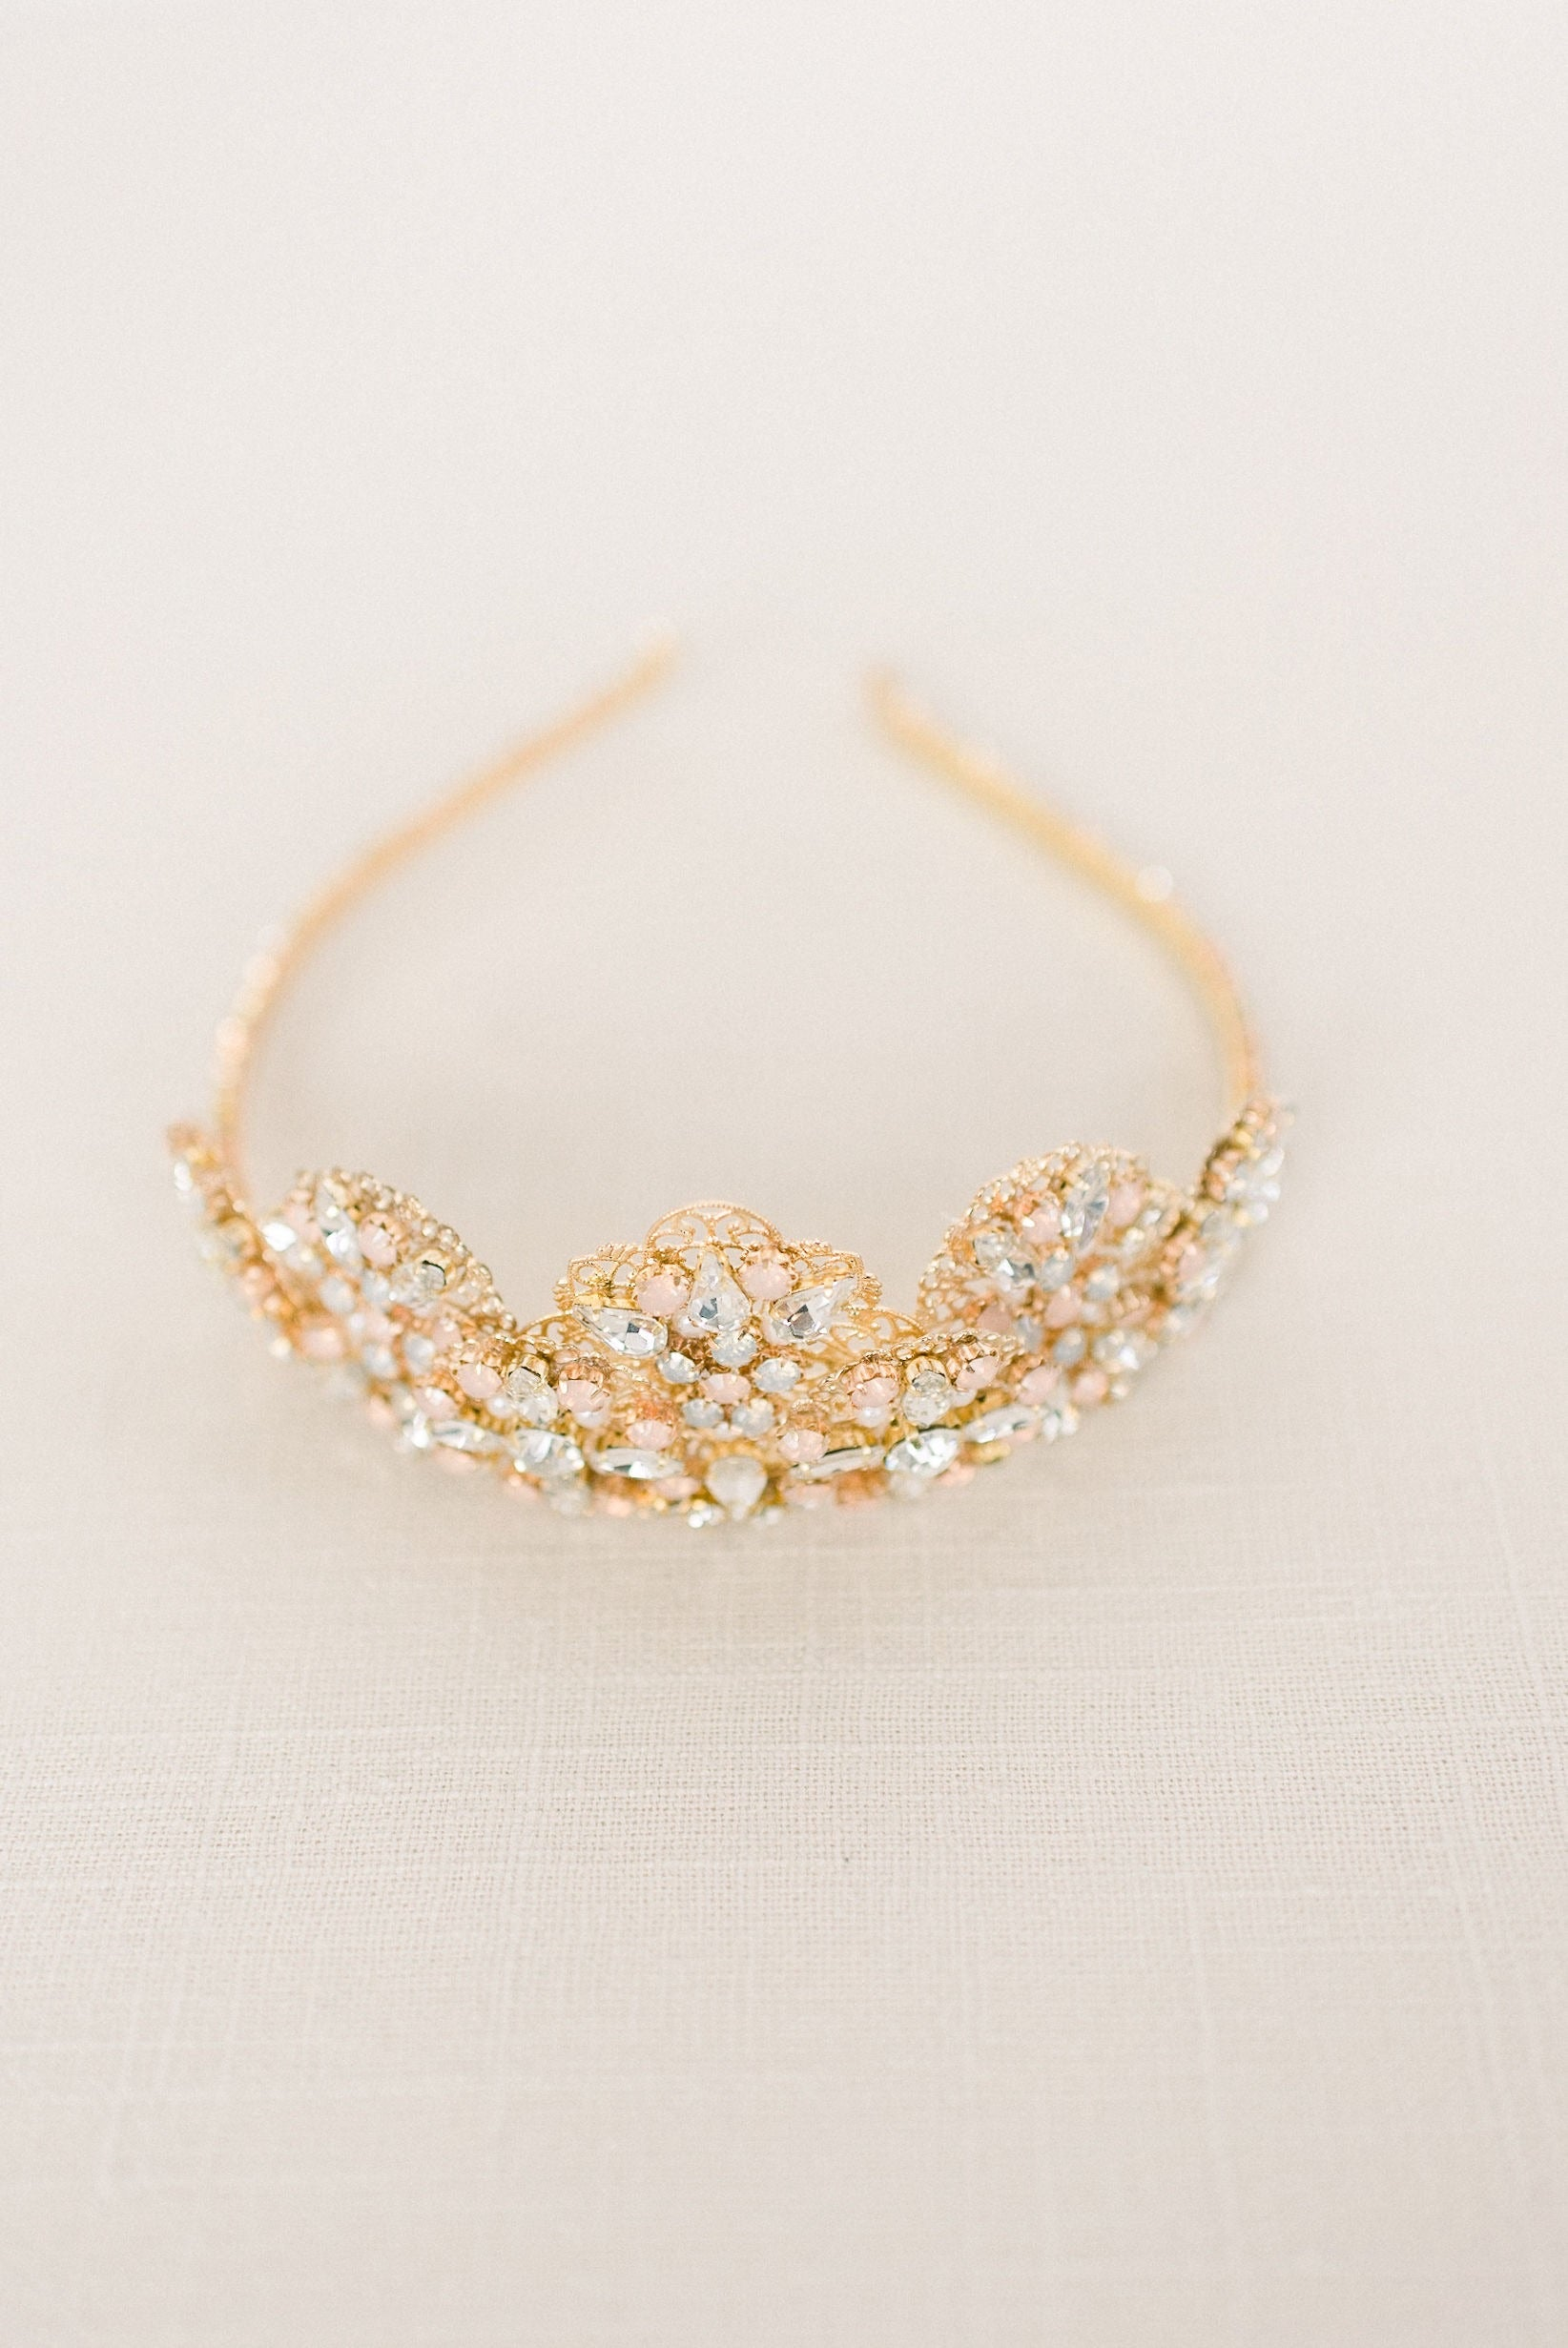 Blush and gold tiara crown - style 4012 - Ready to ship - Tessa Kim